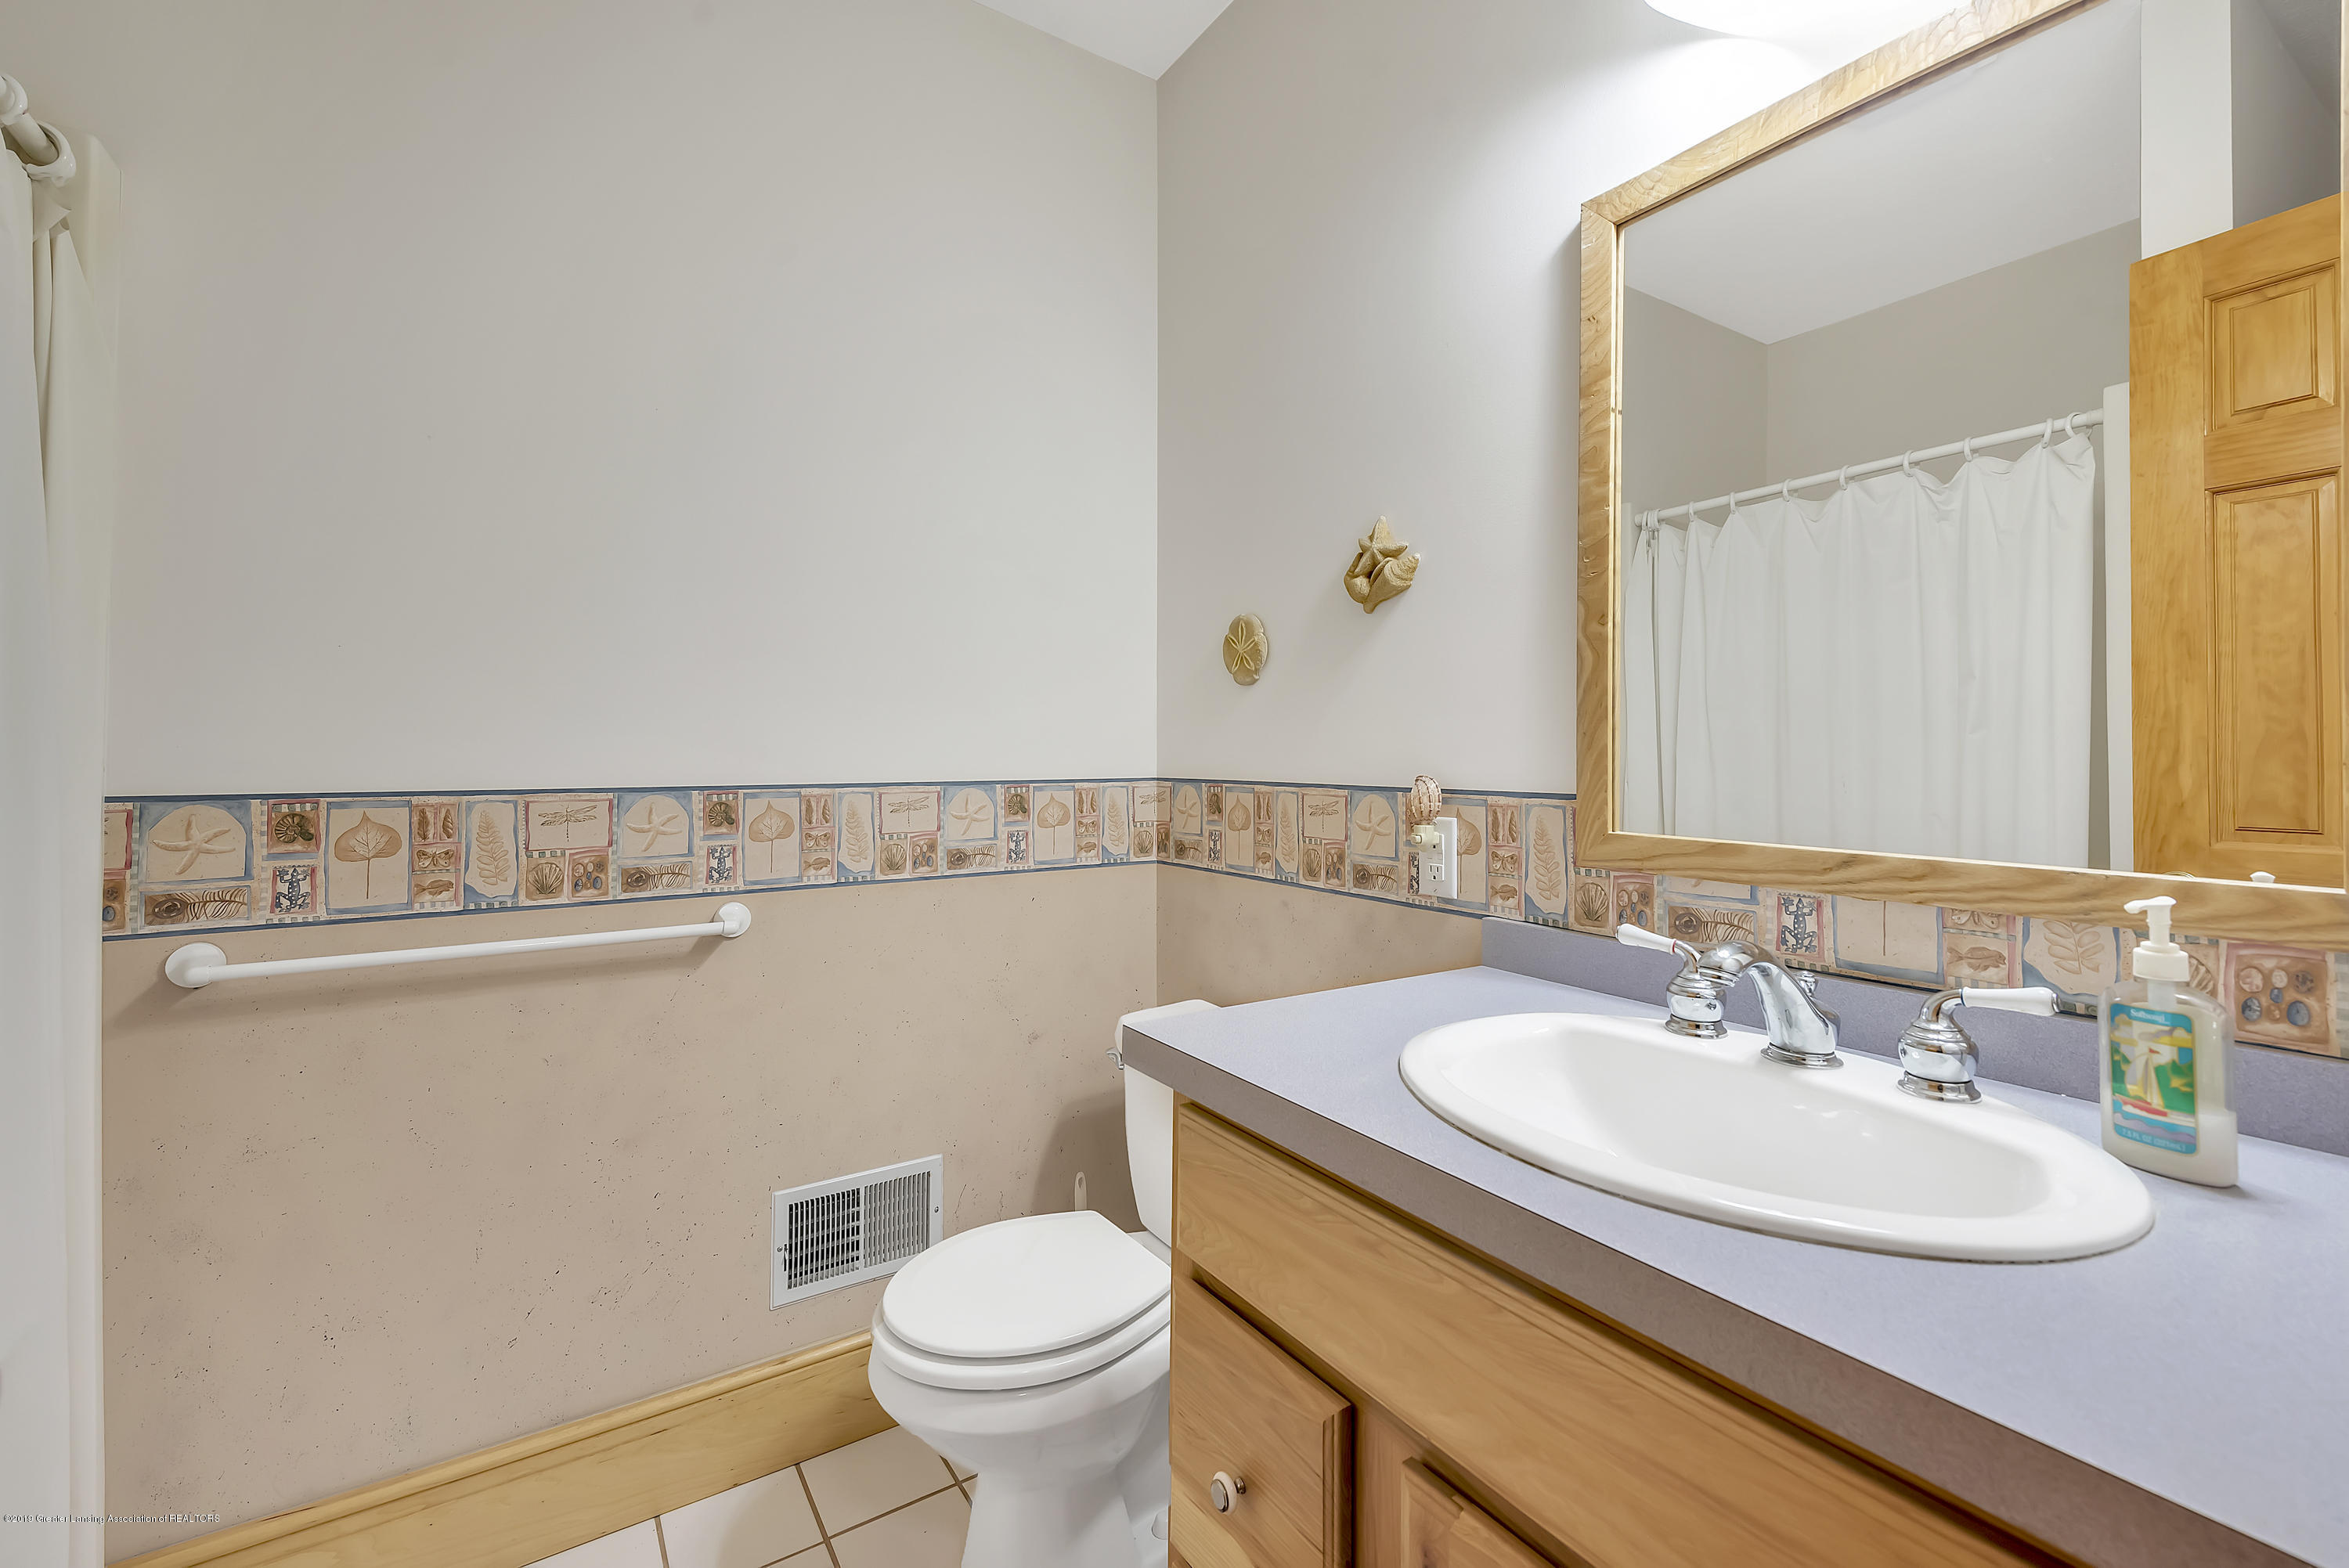 10865 Barnes Rd - 10865-Barnes-Rd-WindowStill-Real-Estate- - 33